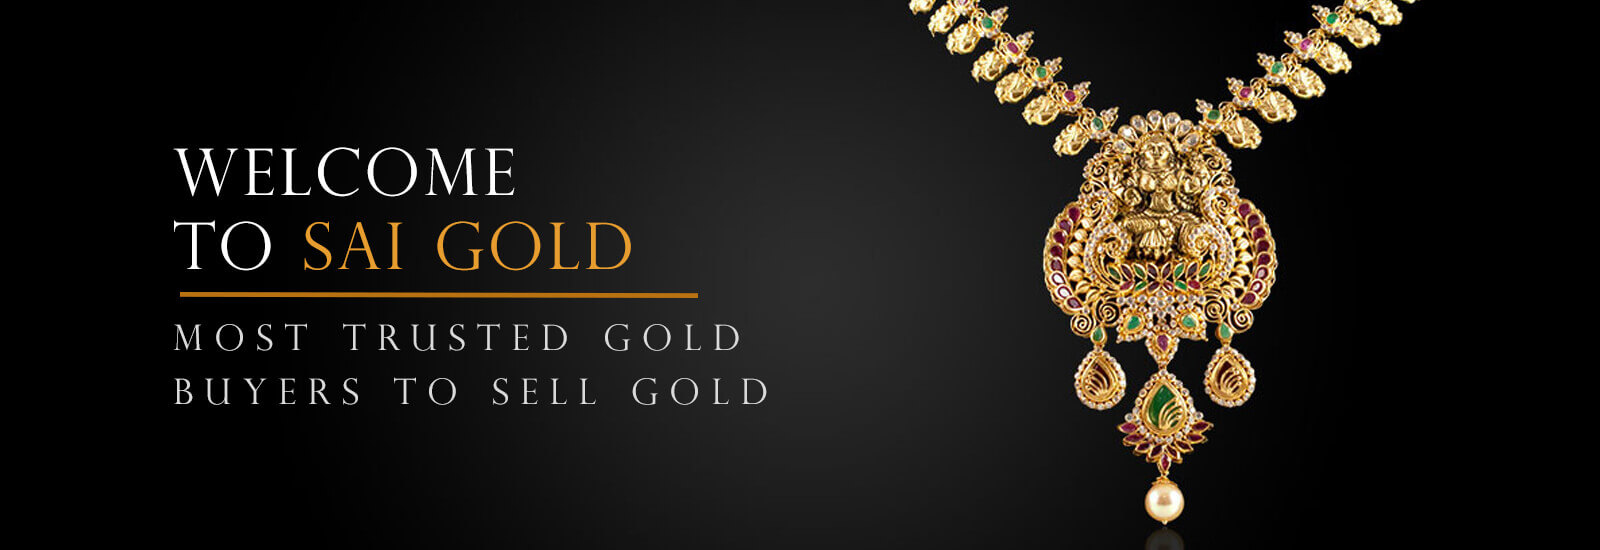 Best Gold Buyers, Jewellery Buyers, Cash For Gold, Release Gold